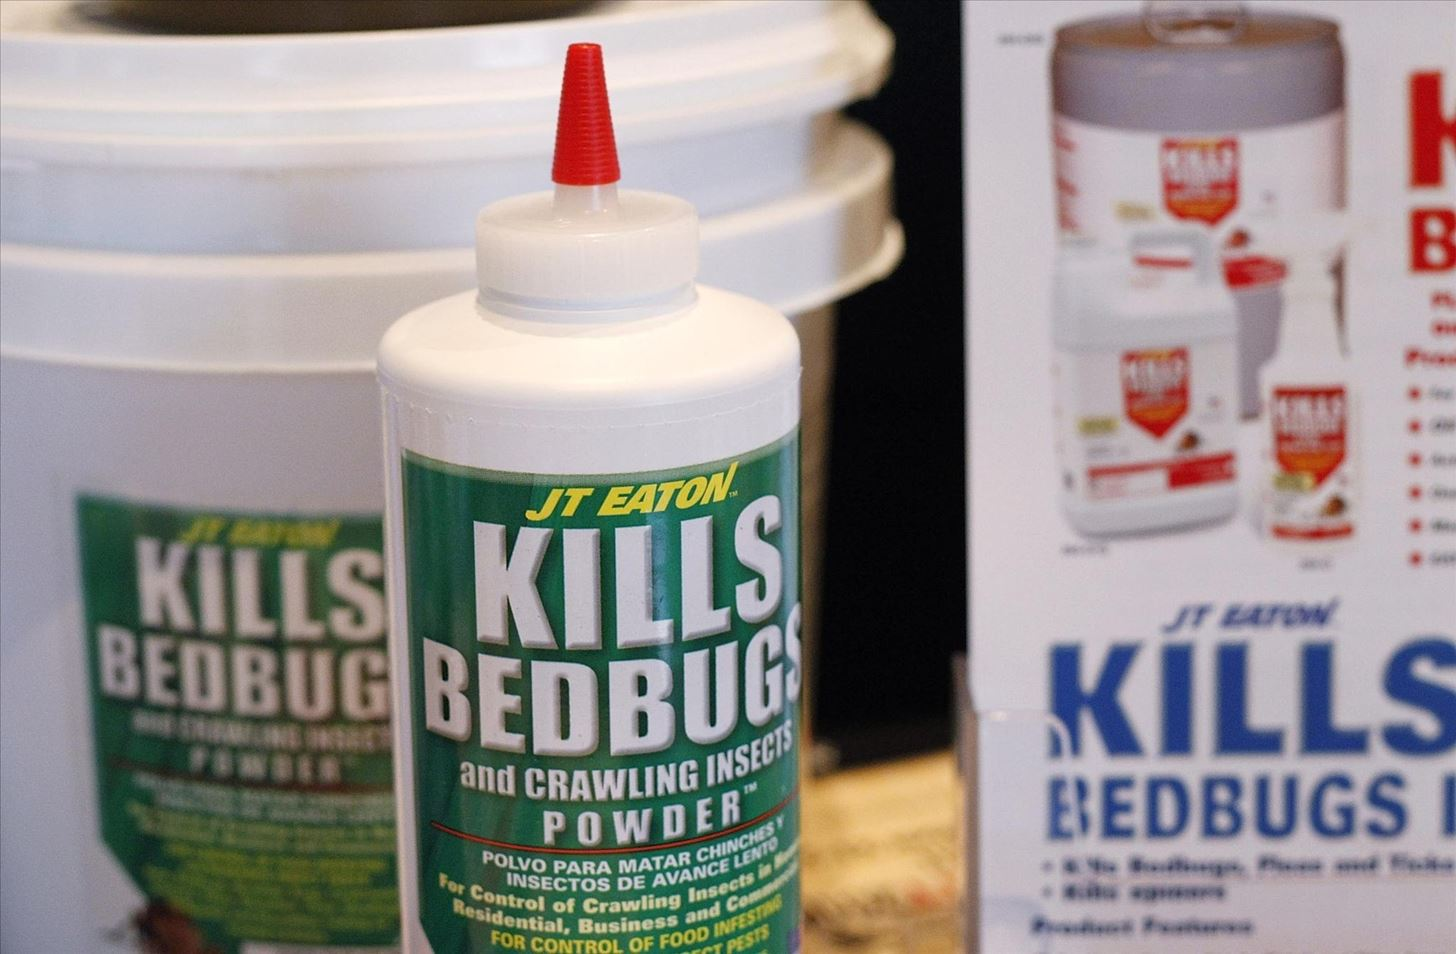 Are There Bedbugs in Your Library Books? Here's How to Spot and Destroy Those Bloodsuckers!